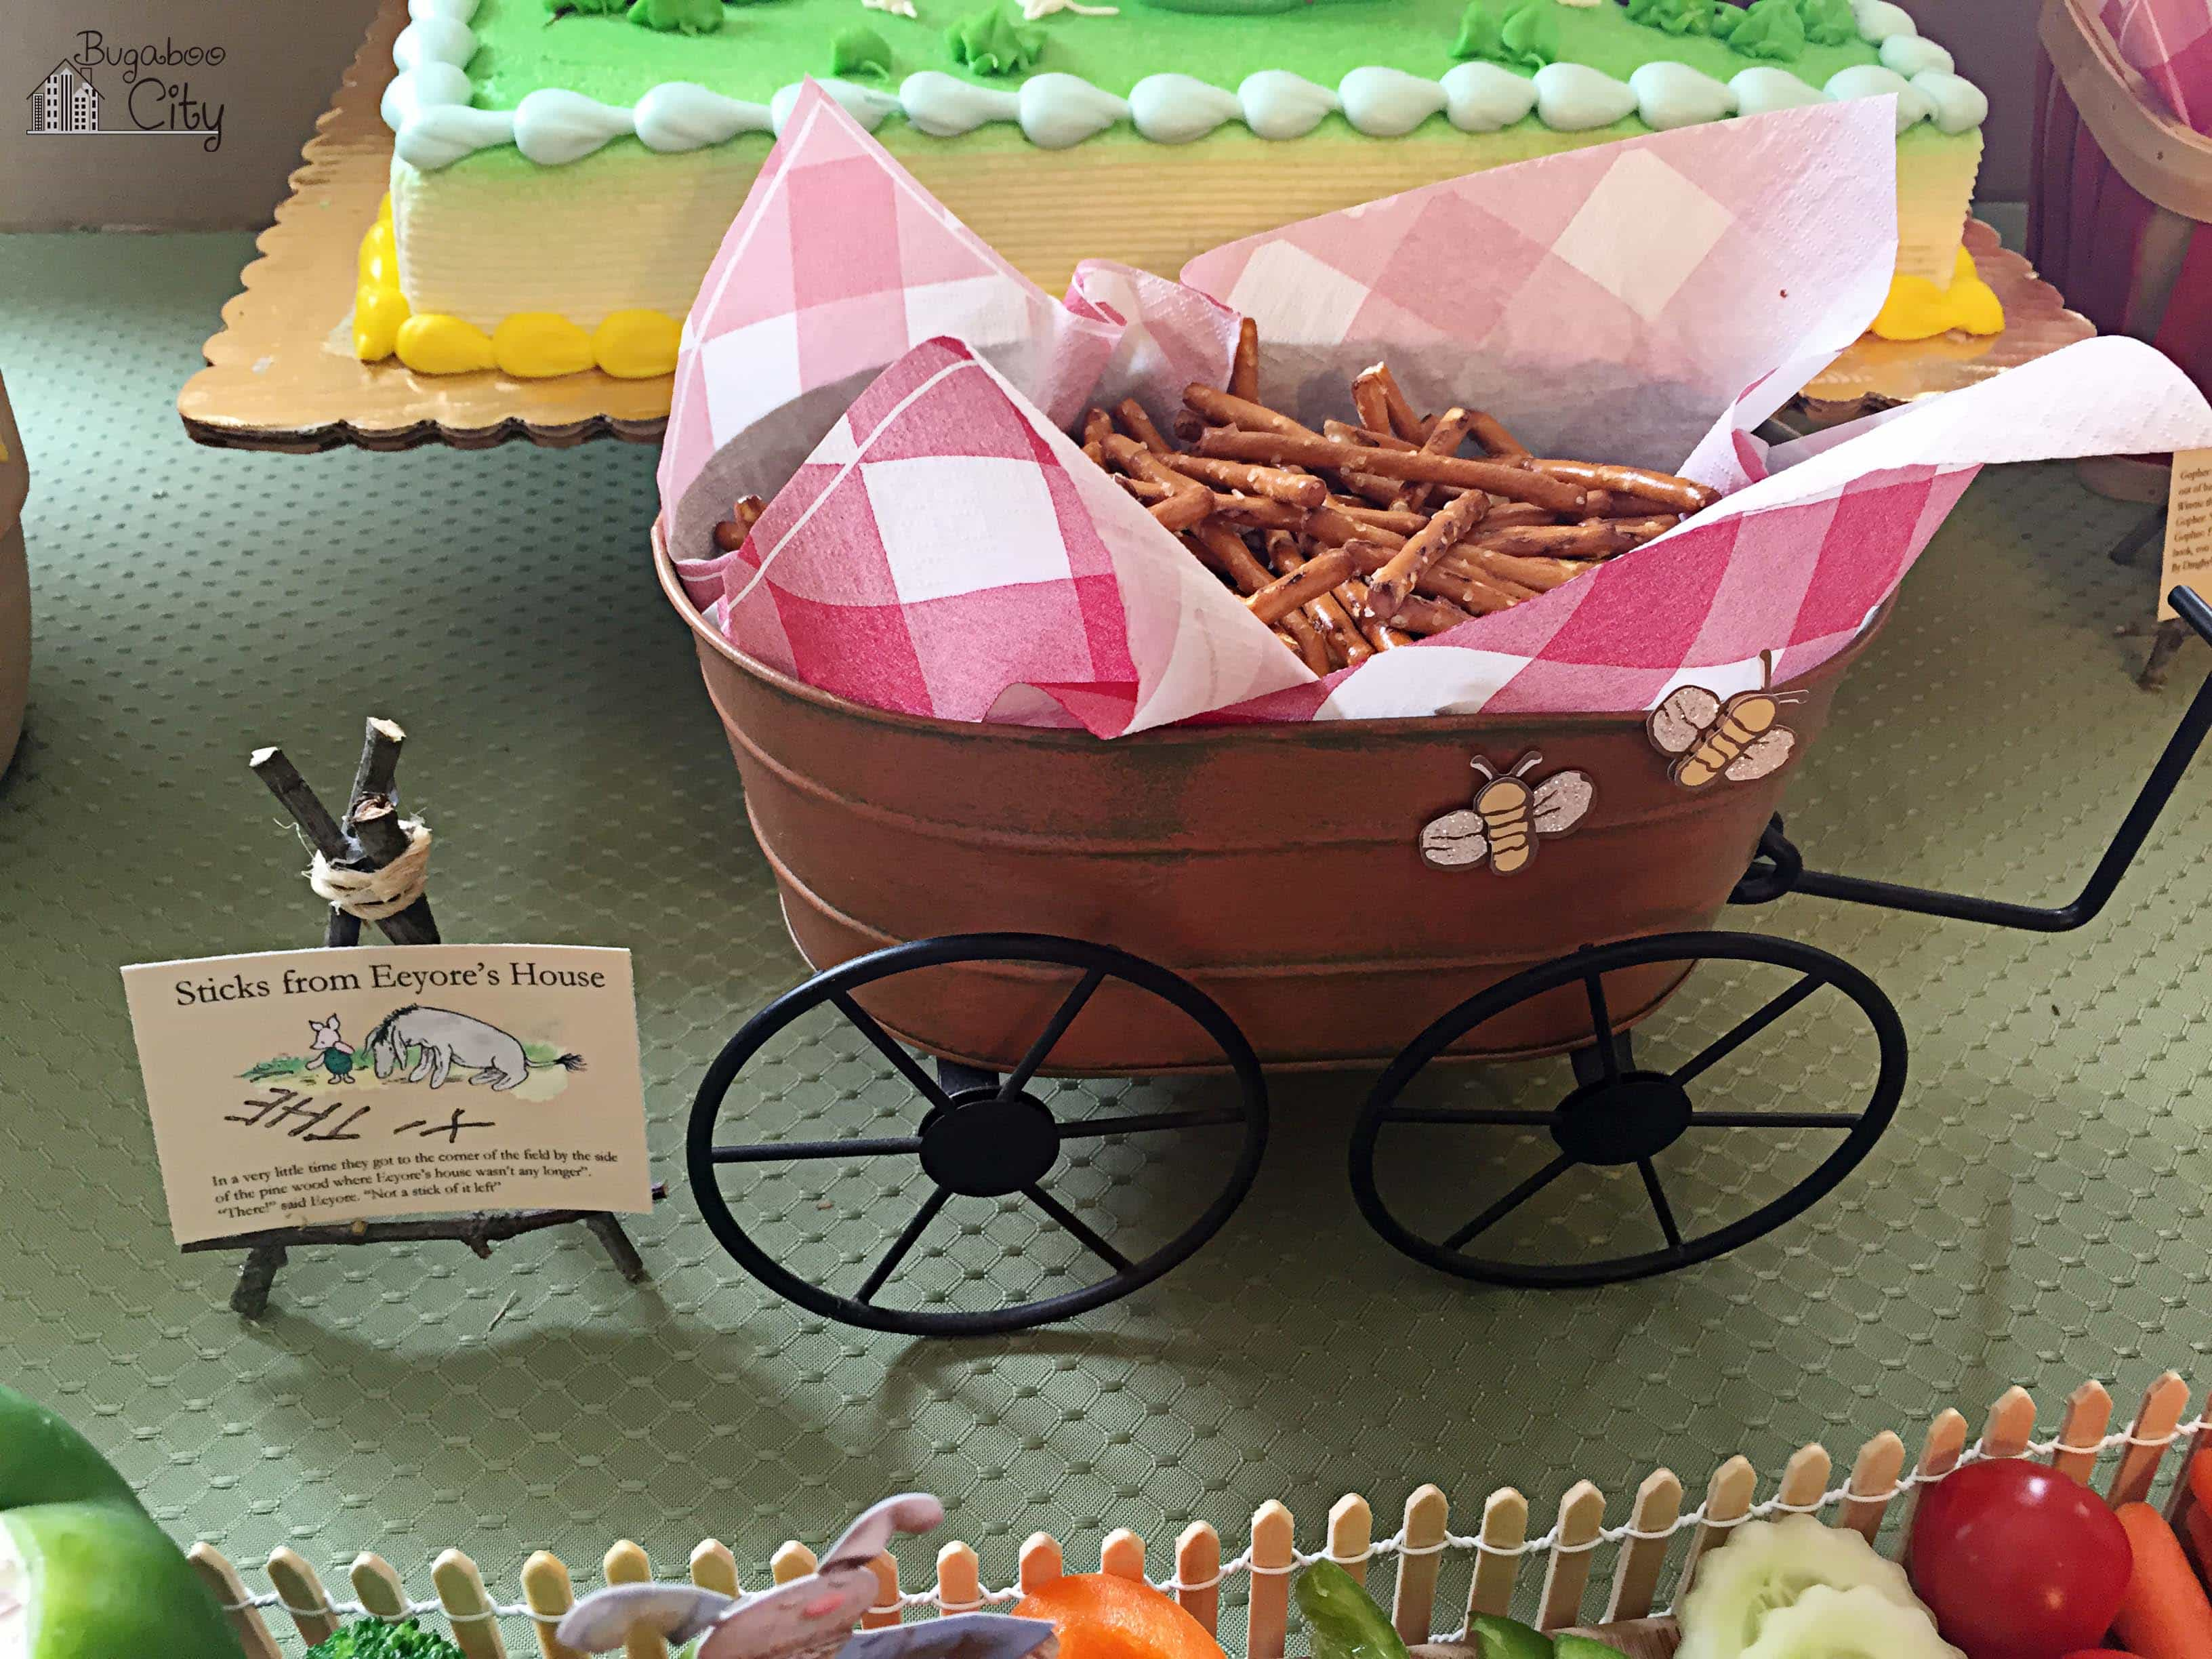 Winnie the Pooh Party Food Ideas - BugabooCity